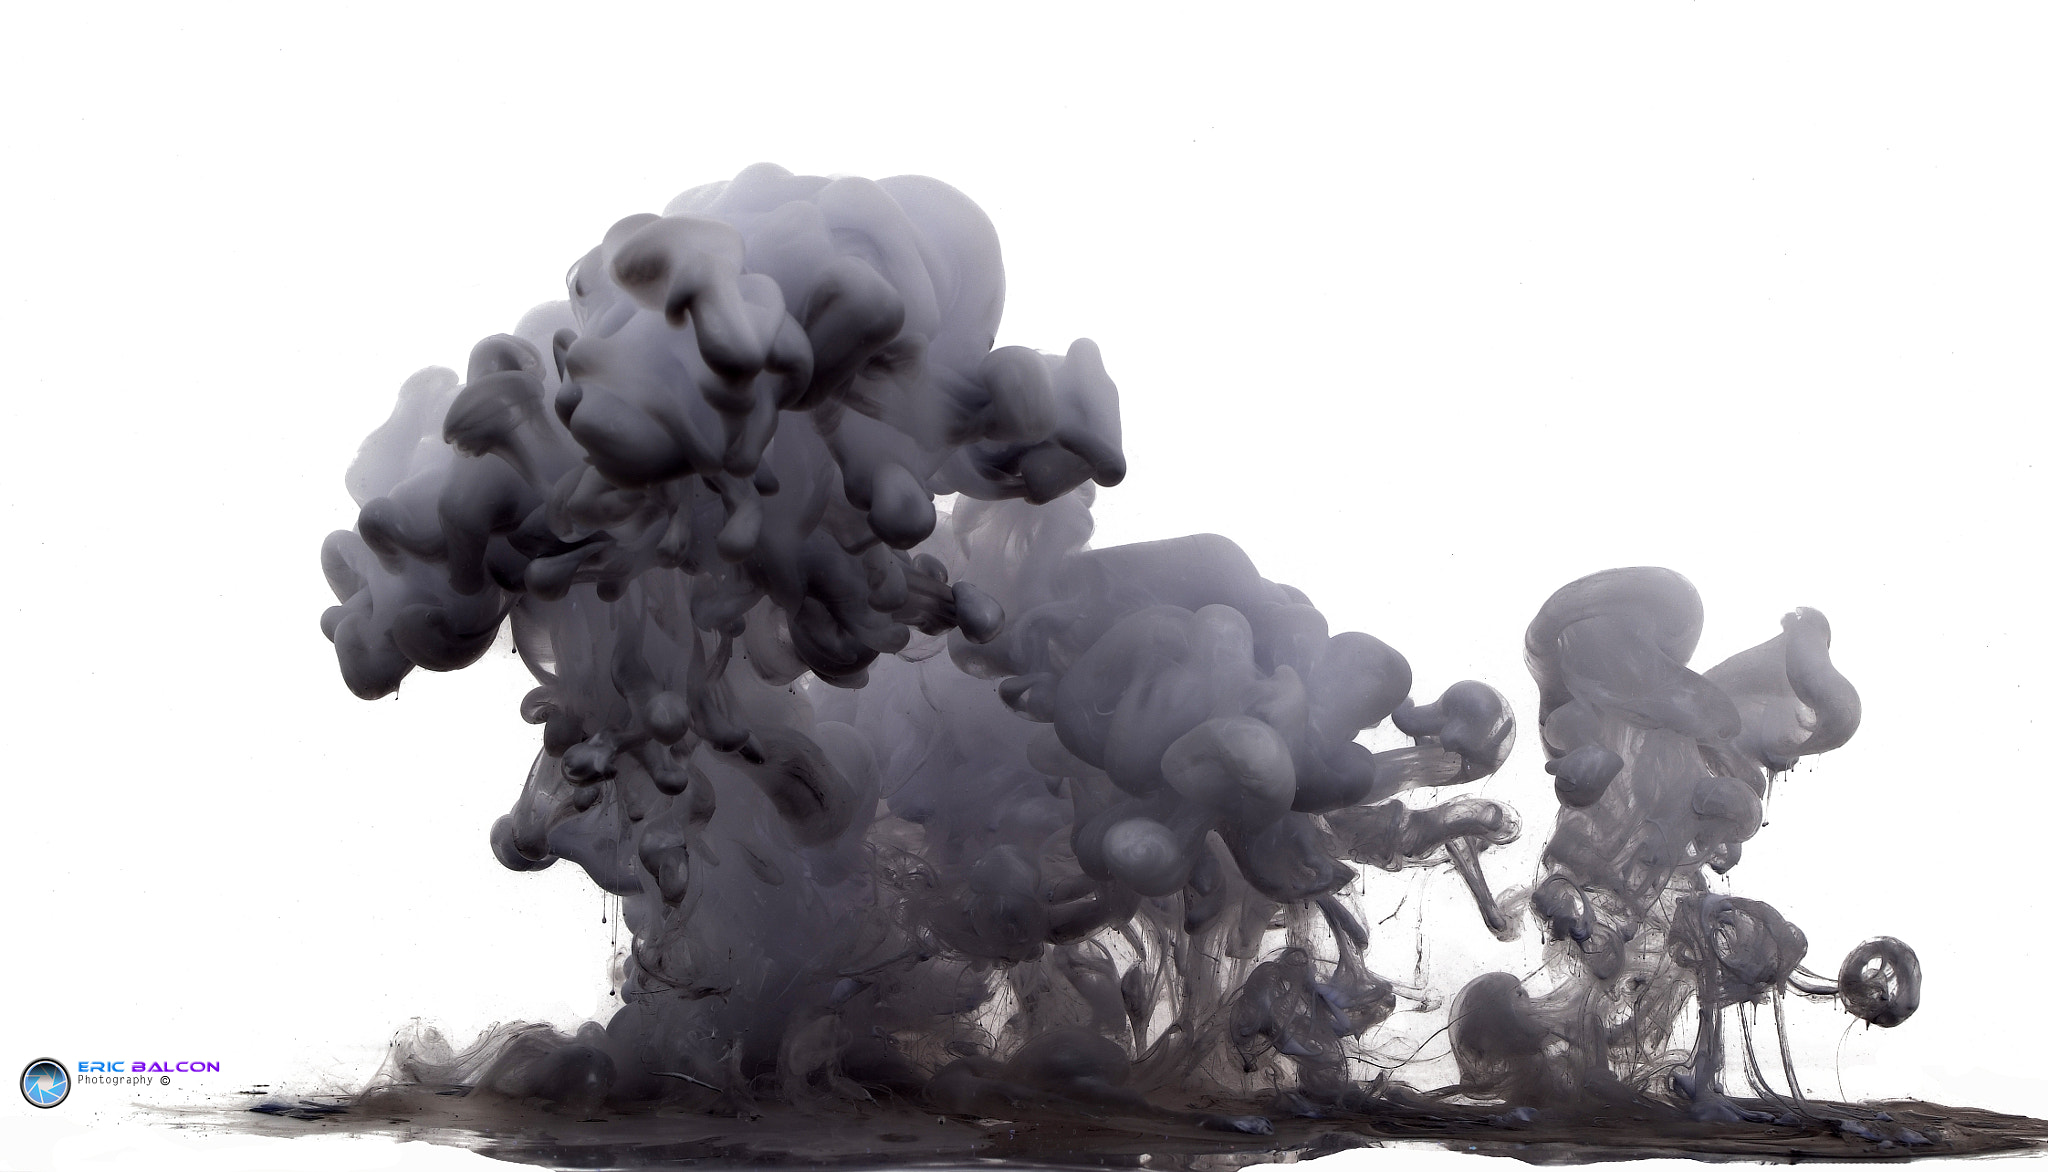 Photograph Nuclear Fire in  the Water by Eric Balcon on 500px